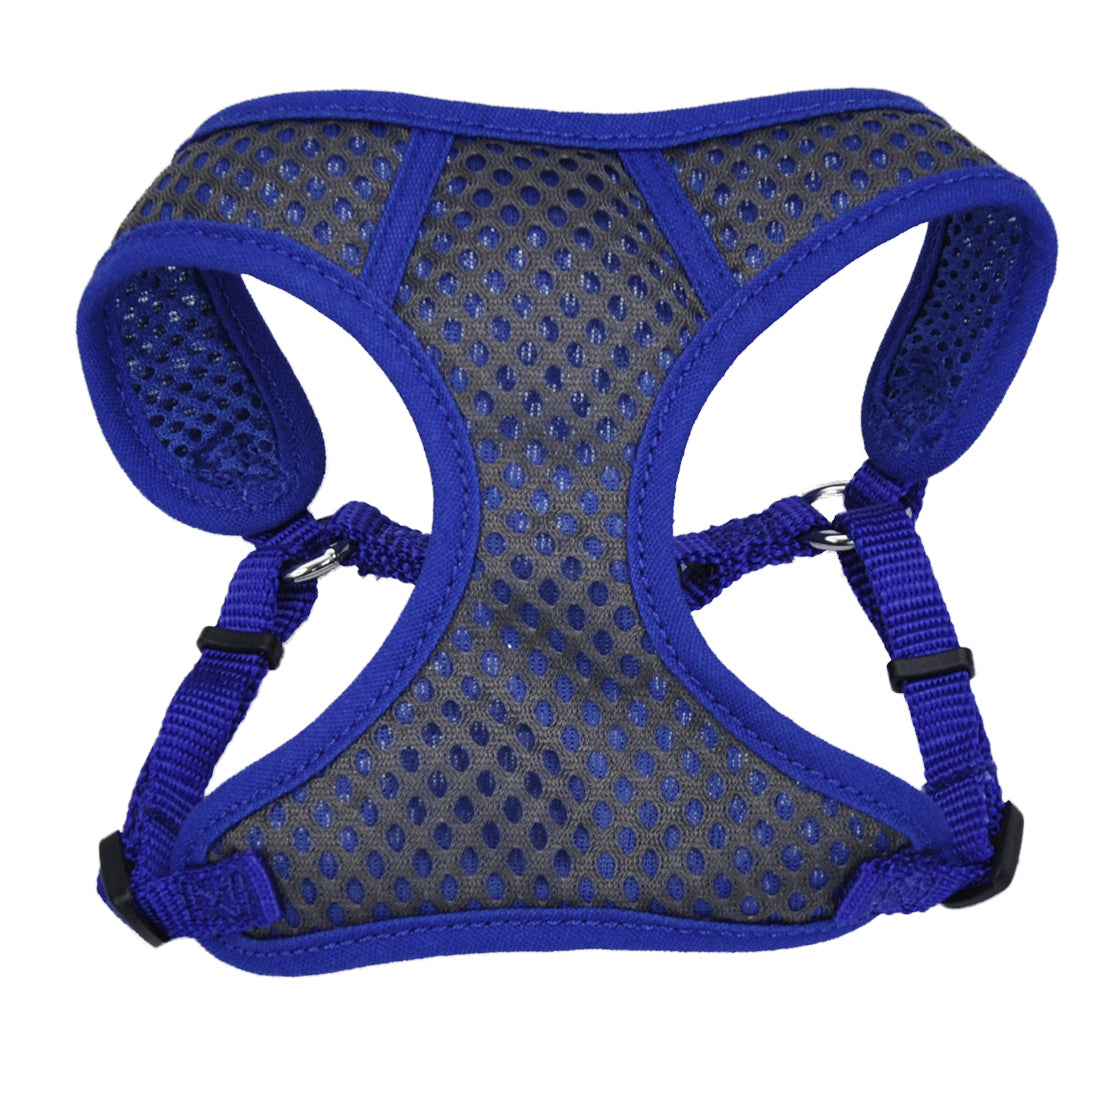 Coastal Sport Wrap Adjustable Harness Large Blue